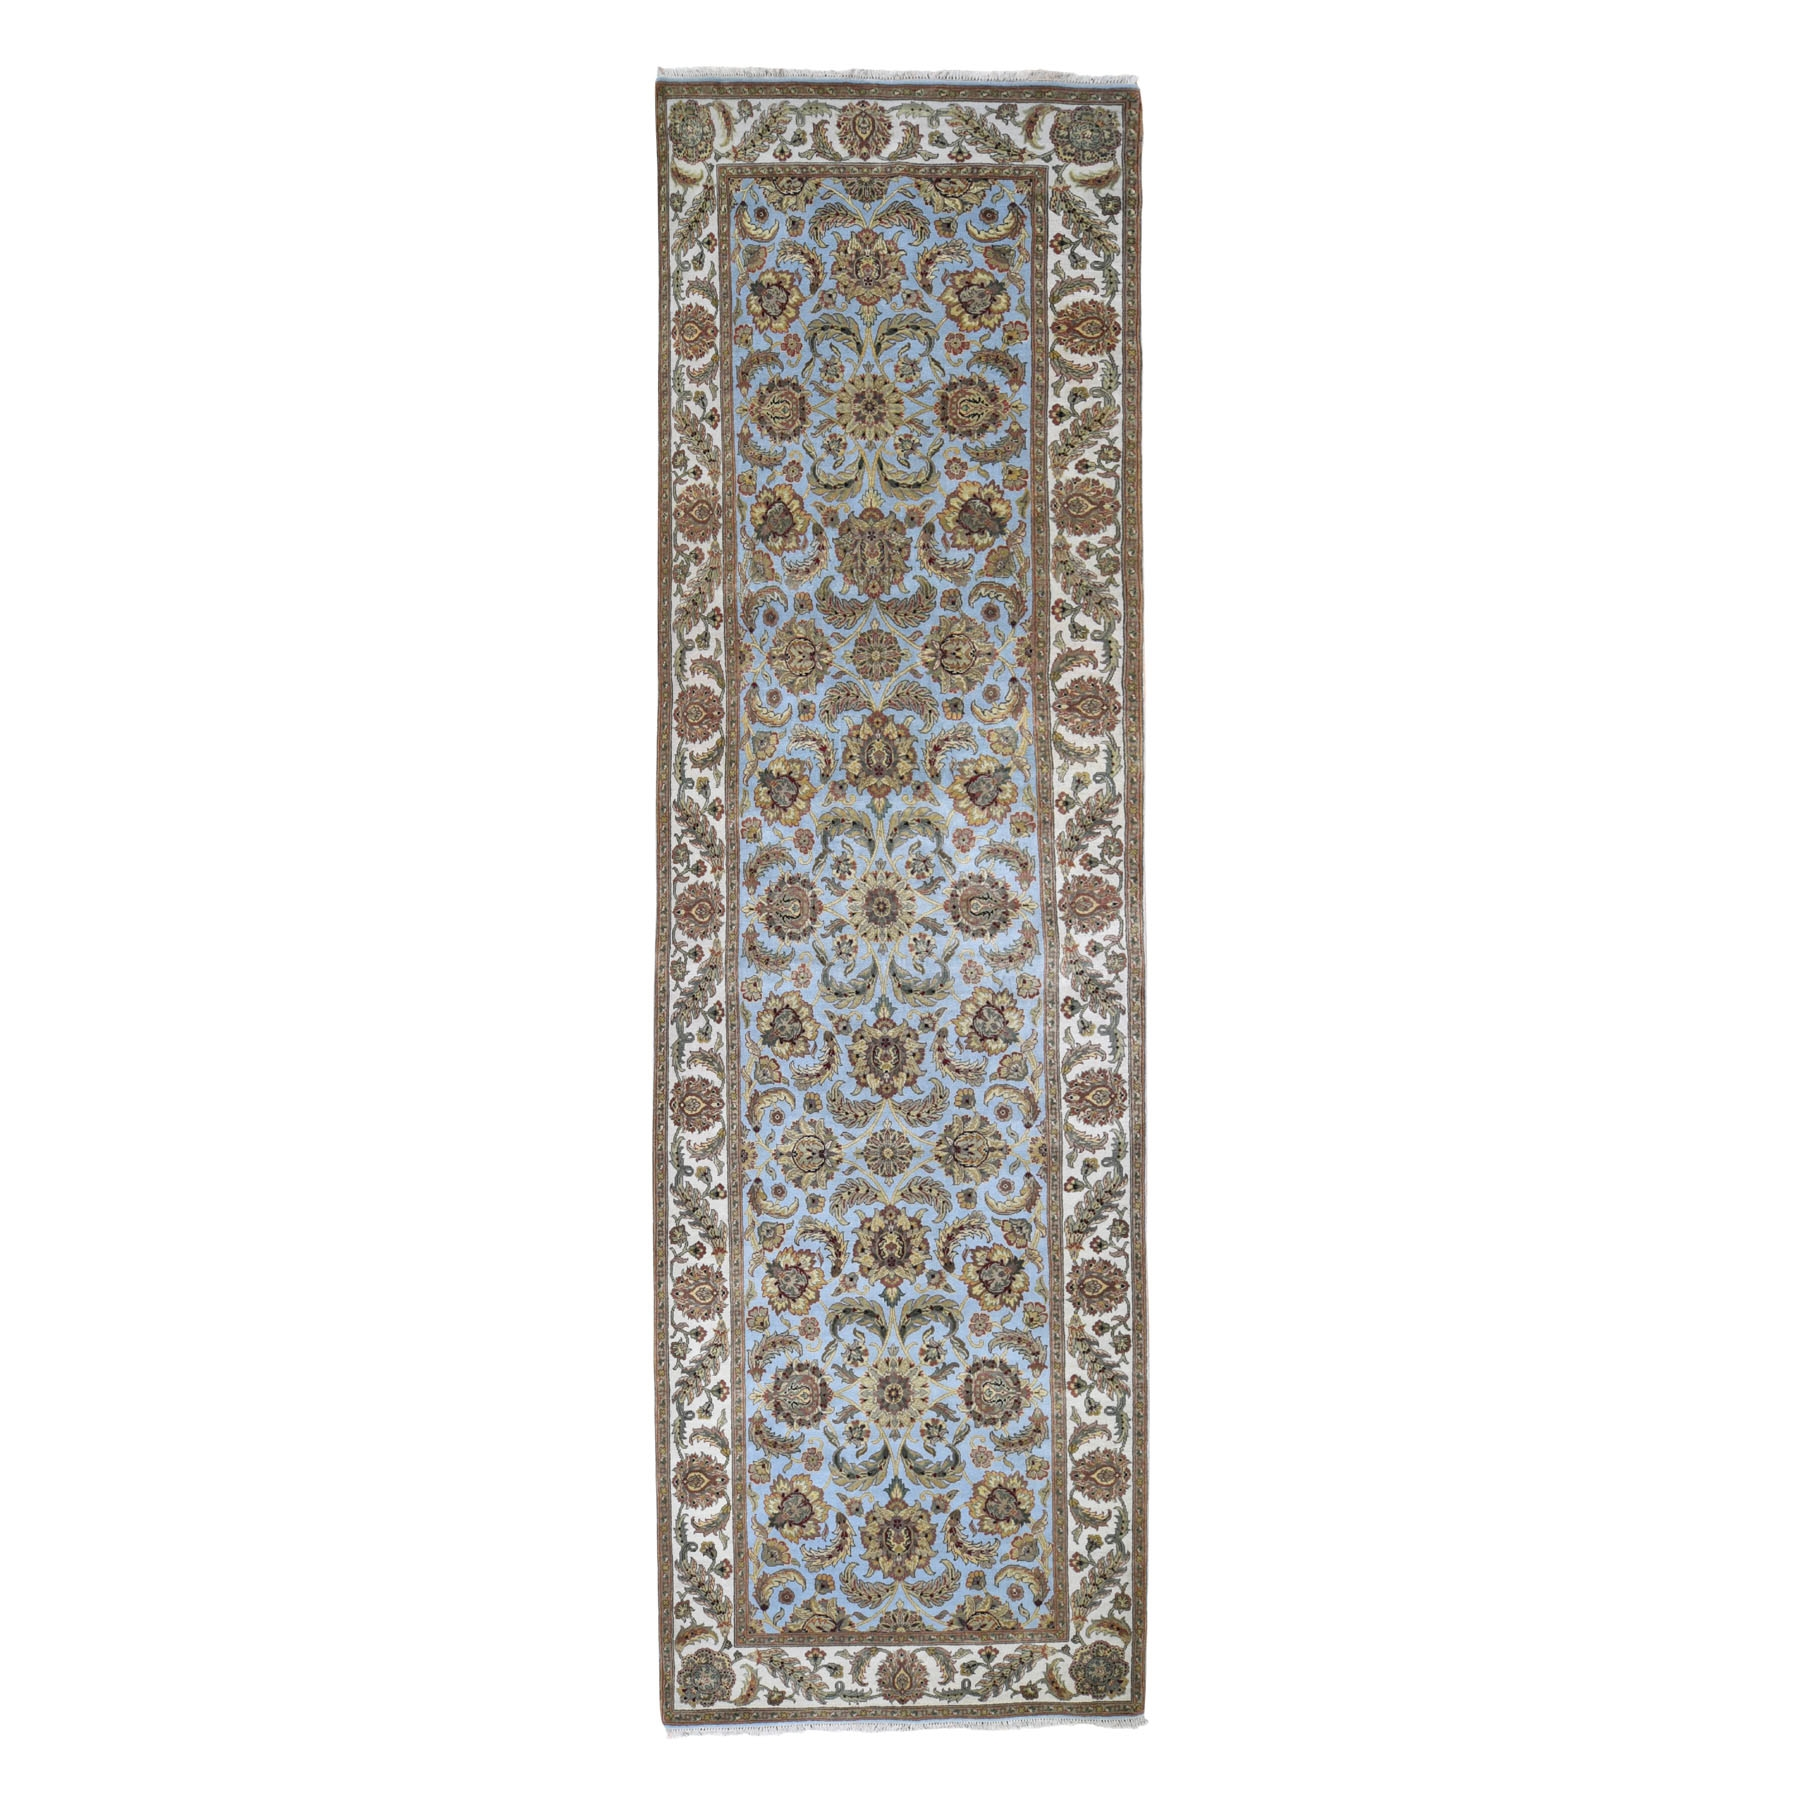 Pahlavi Collection Hand Knotted Blue Rug No: 0197874